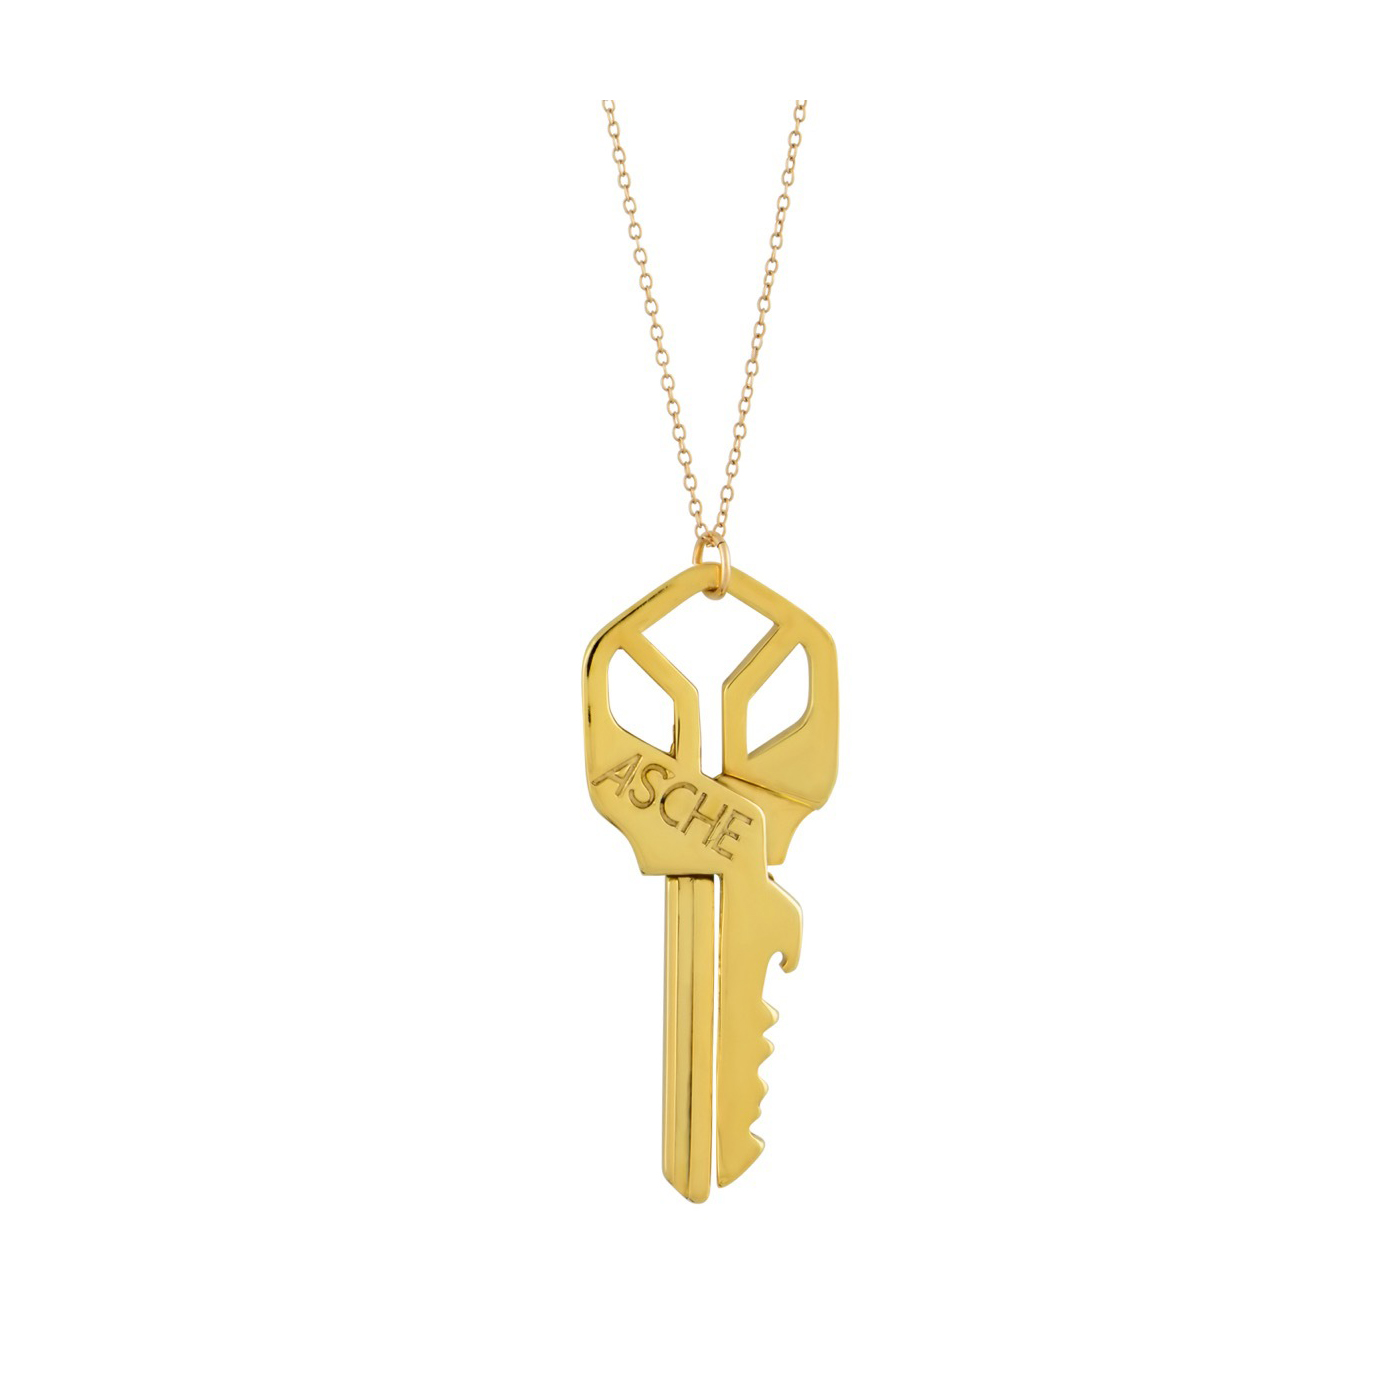 ASCHE INDUSTRIES Gold Key Clip